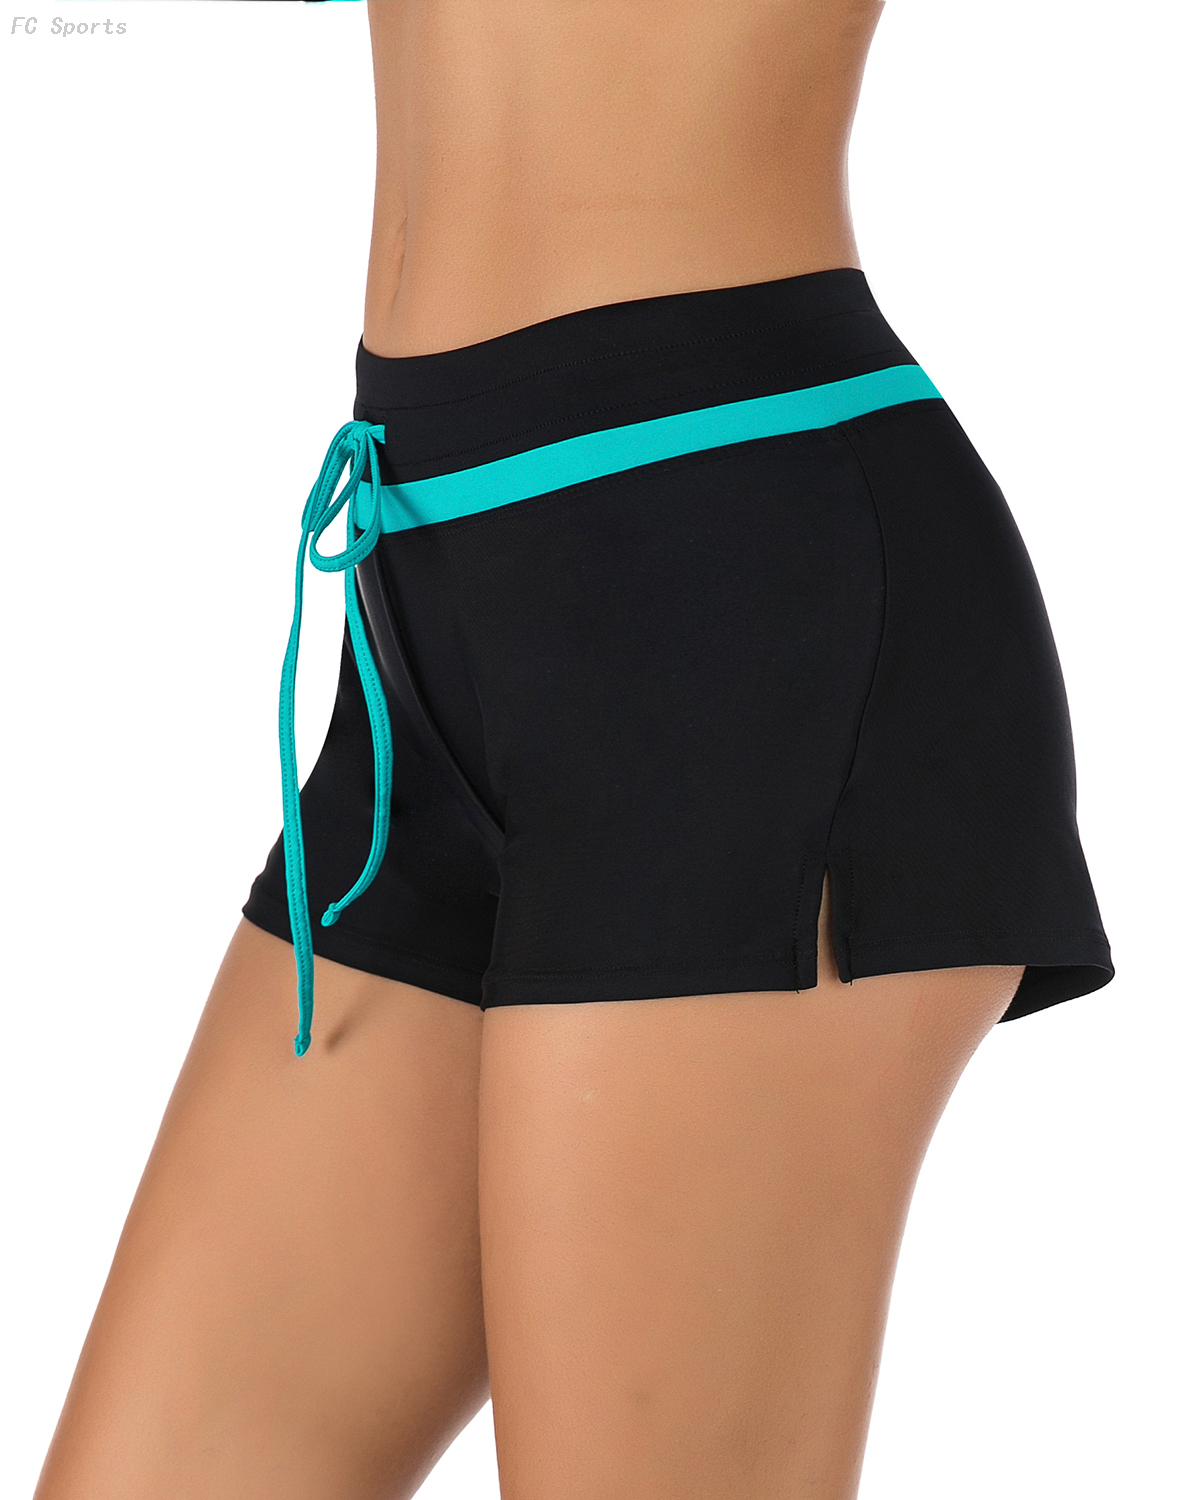 FC Sports Solid Swimming Briefs Ladies Bottom Beach Sexy Women Summer Bathing shorts